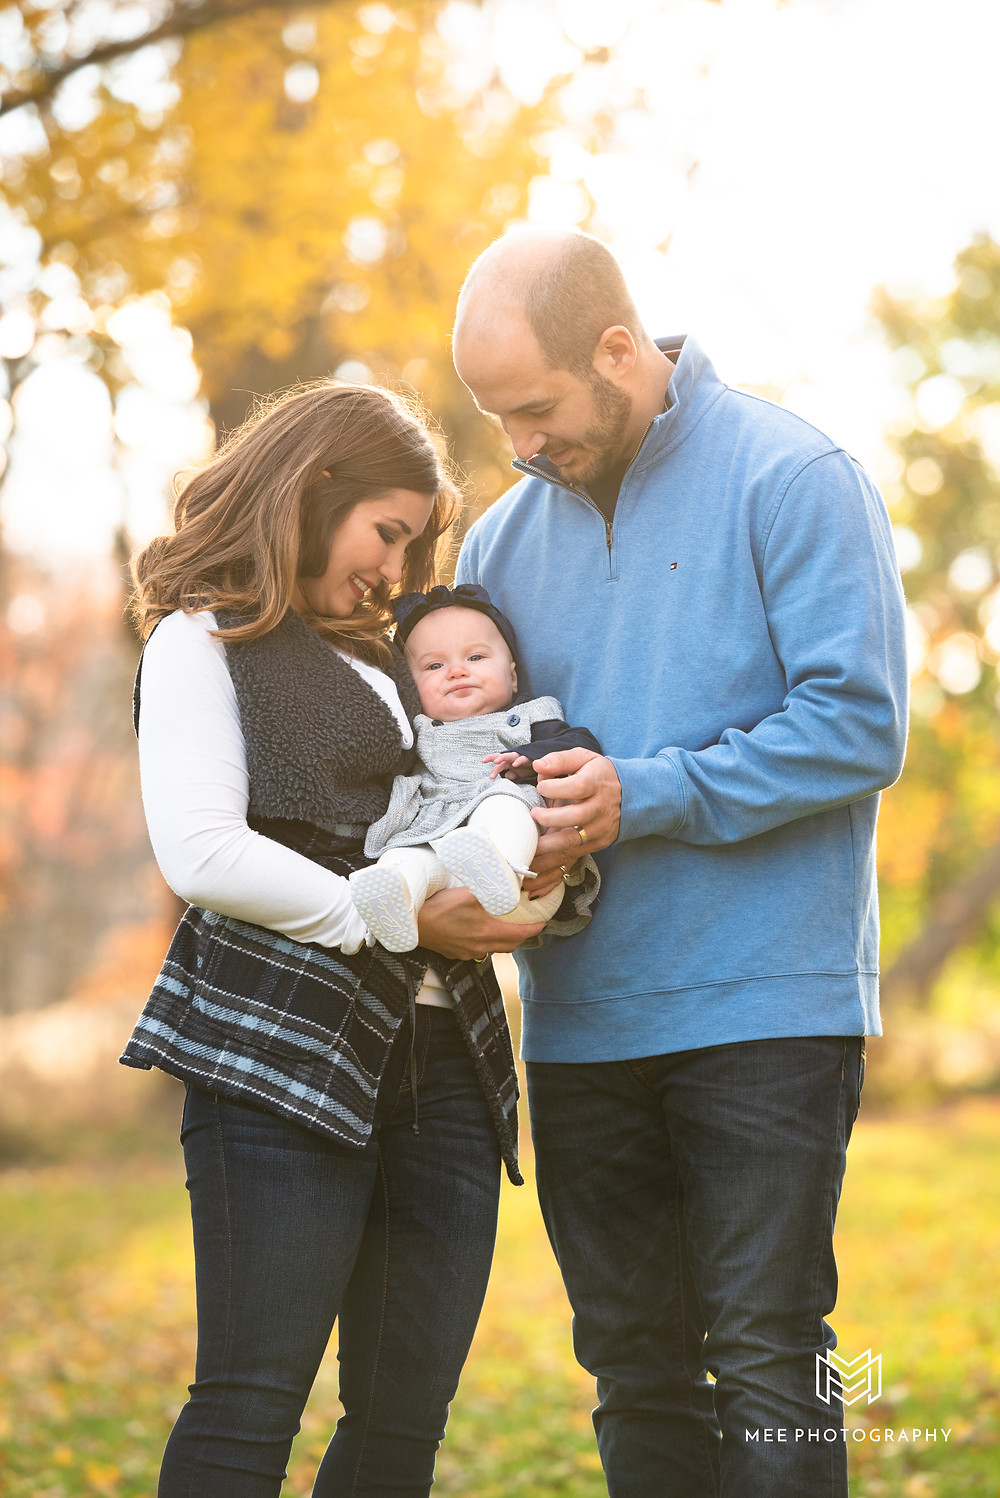 Parents with their baby during a fall photoshoot